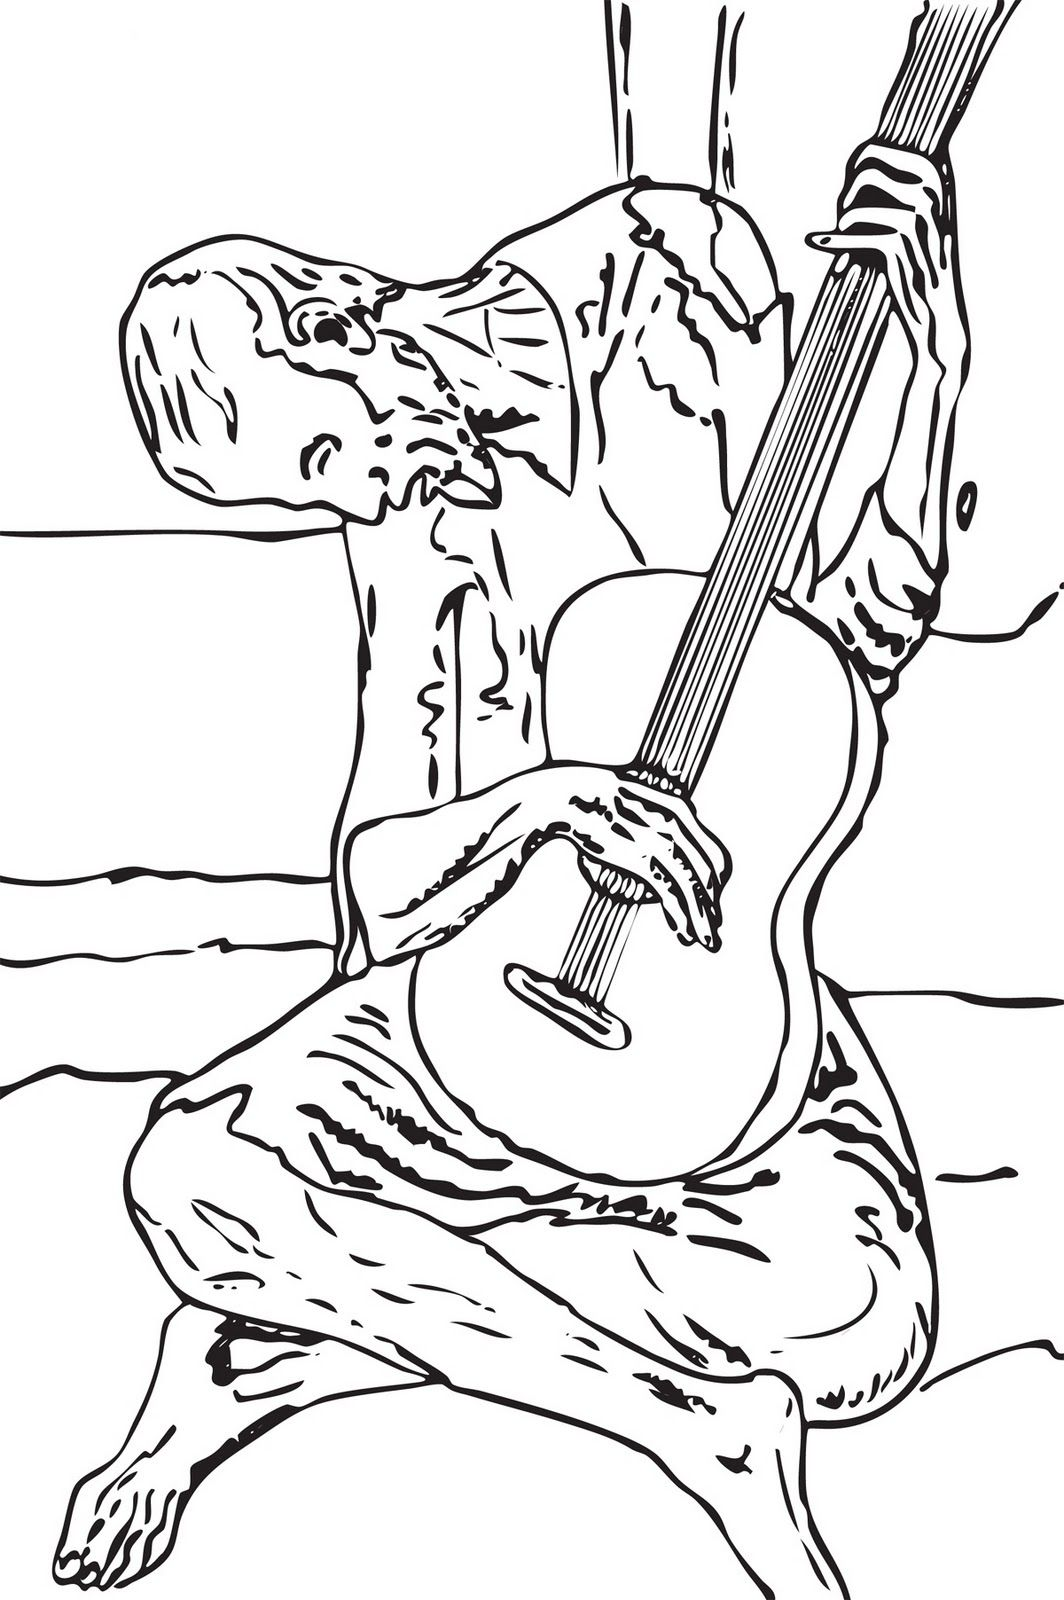 Picasso Coloring Pages Beautiful Free Coloring Pages Of Pablo Picasso Picasso Coloring Drawings Pablo Picasso Paintings